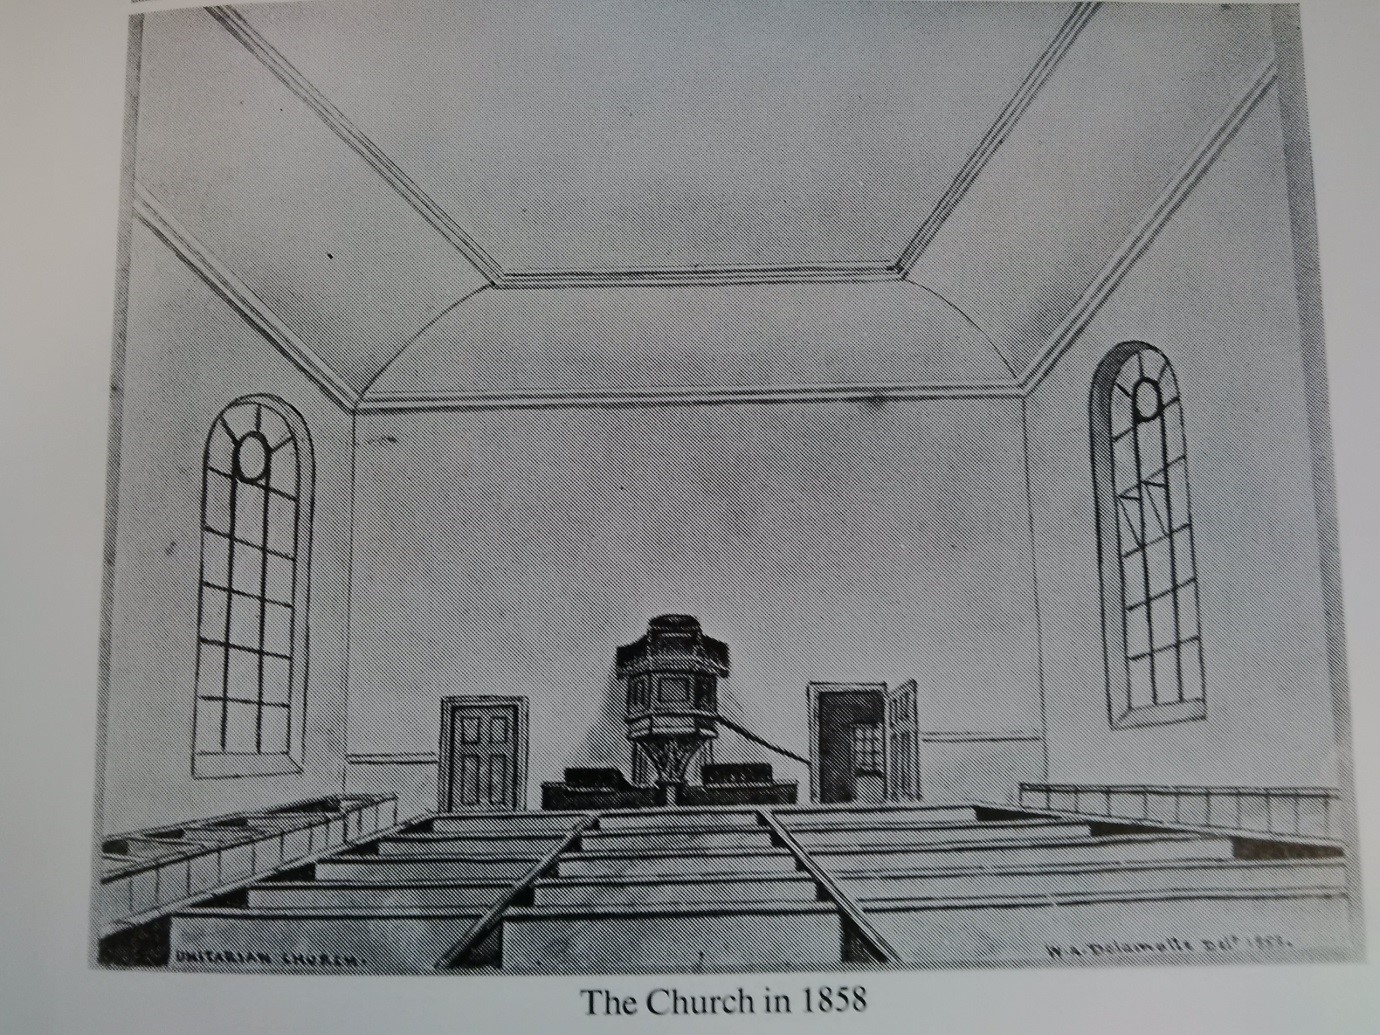 Interior of church in 1858 by William Alfred Delamotte. All seats were free – congregation members did not have to pay for their pew.  Image courtesy of Royal Pavilion & Museums, Brighton & Hove.